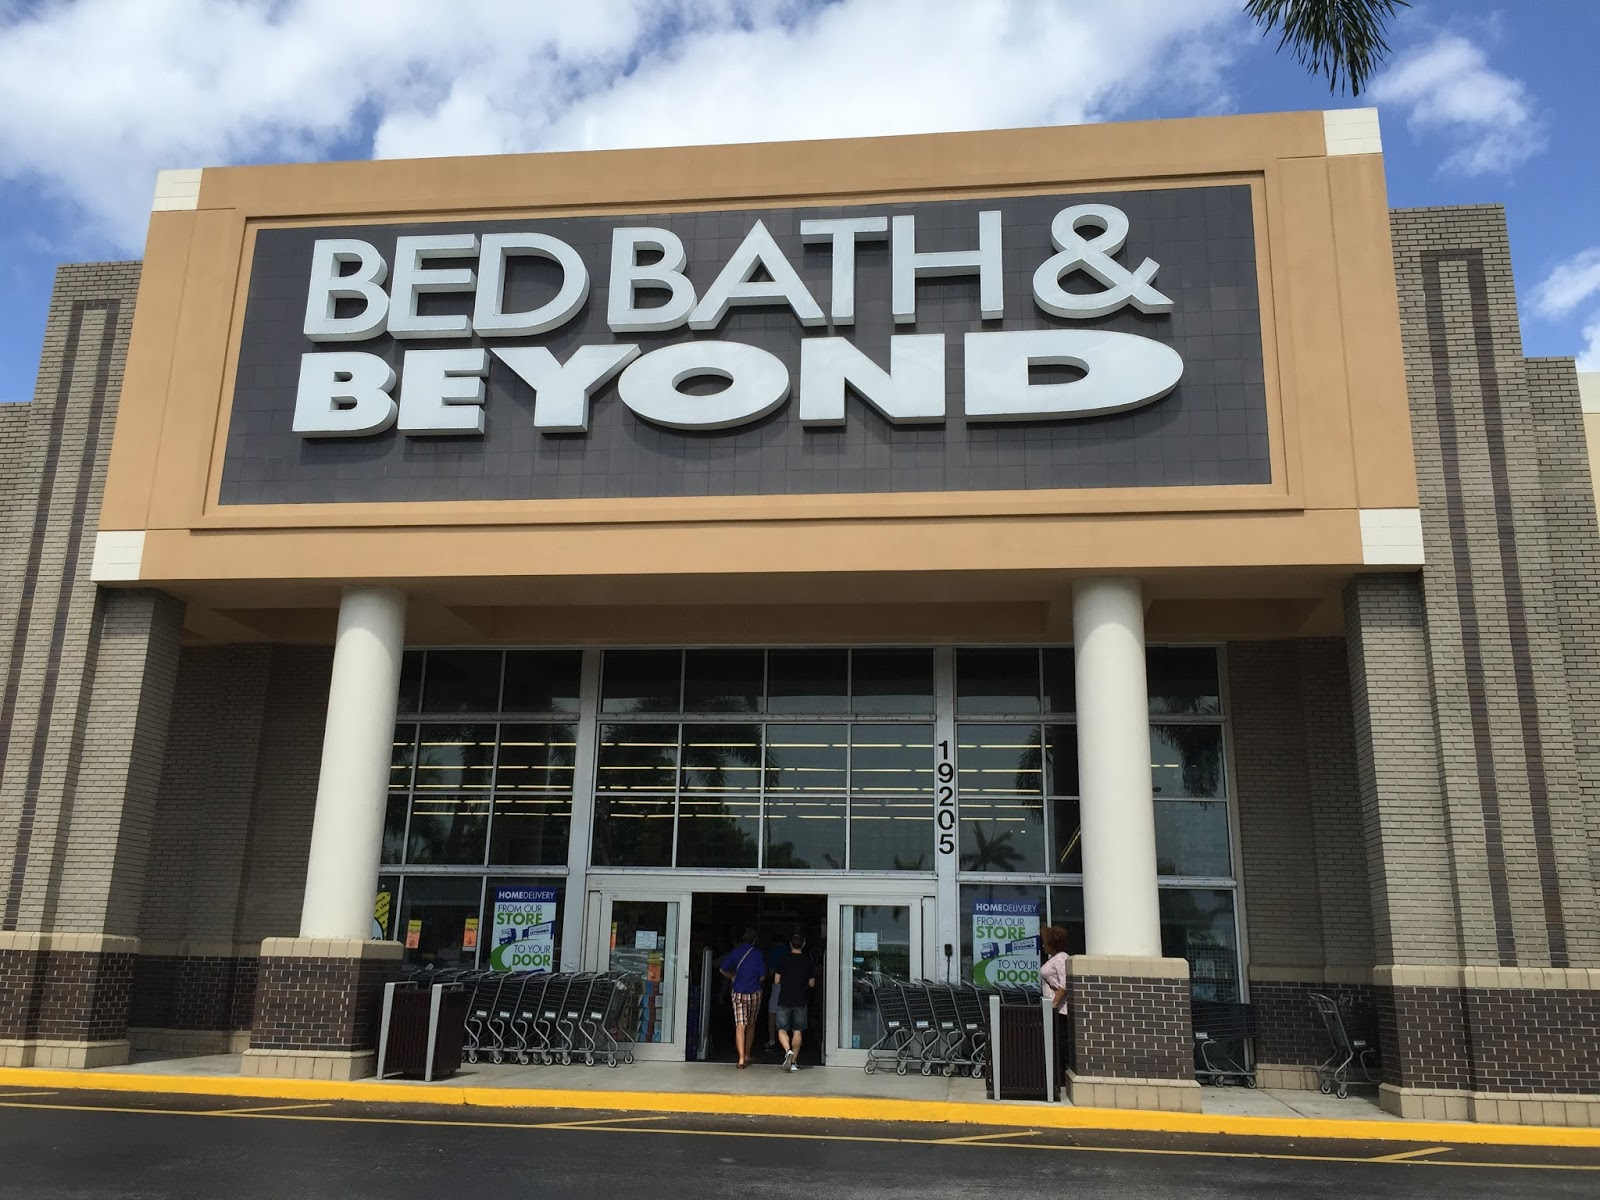 The Complete Guide To Shopping At The Bed Bath and Beyond Canada Over view of the Company The Bed Bath and Beyond Canada is a subsidiary of bed bath and beyond Inc that operates retail stores in the US, Canada and also in Mexico.